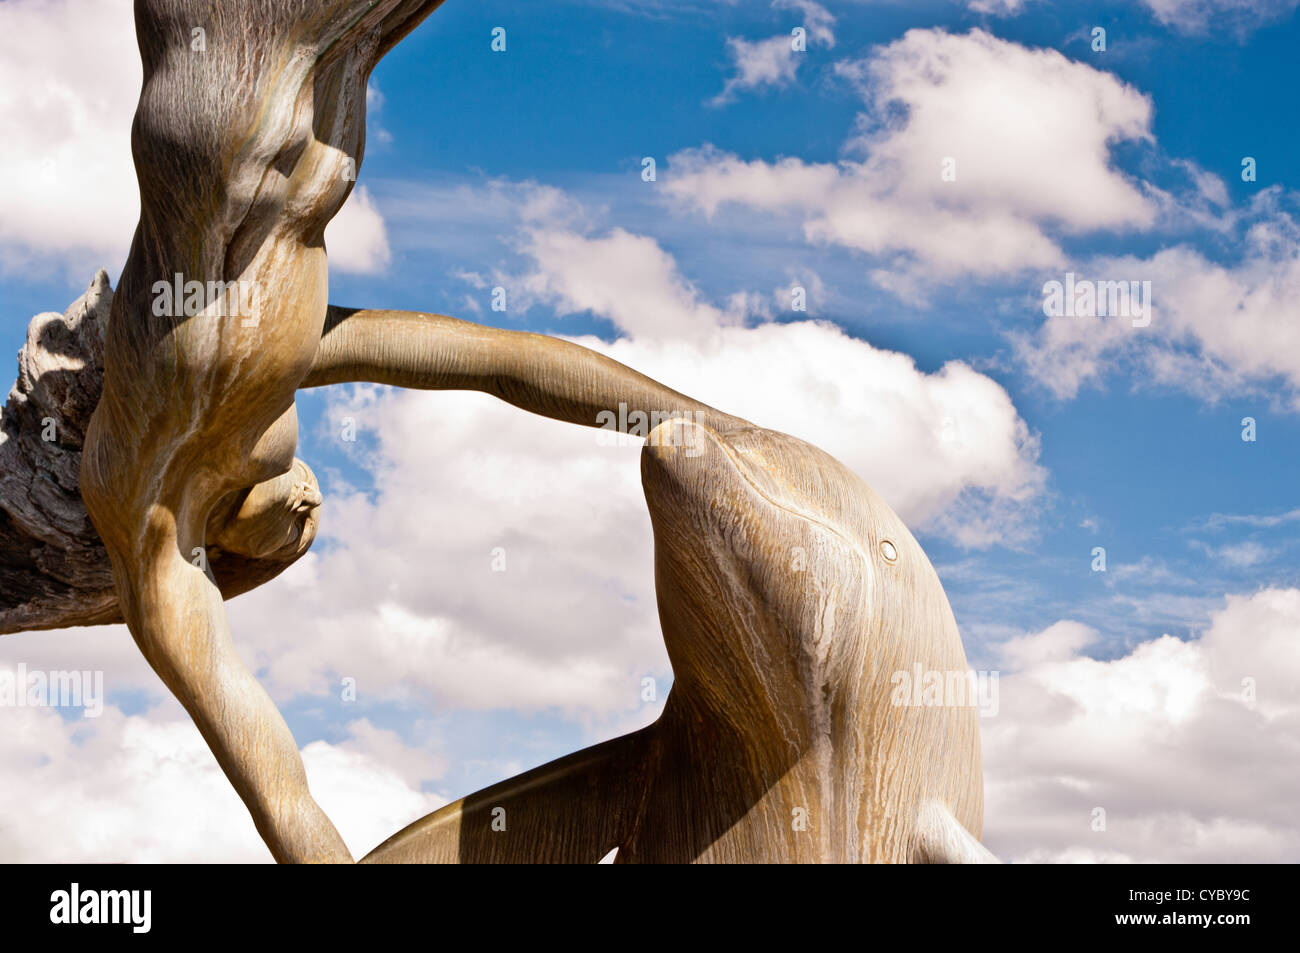 Dolphin Statue against the blue sky and white clouds - Stock Image